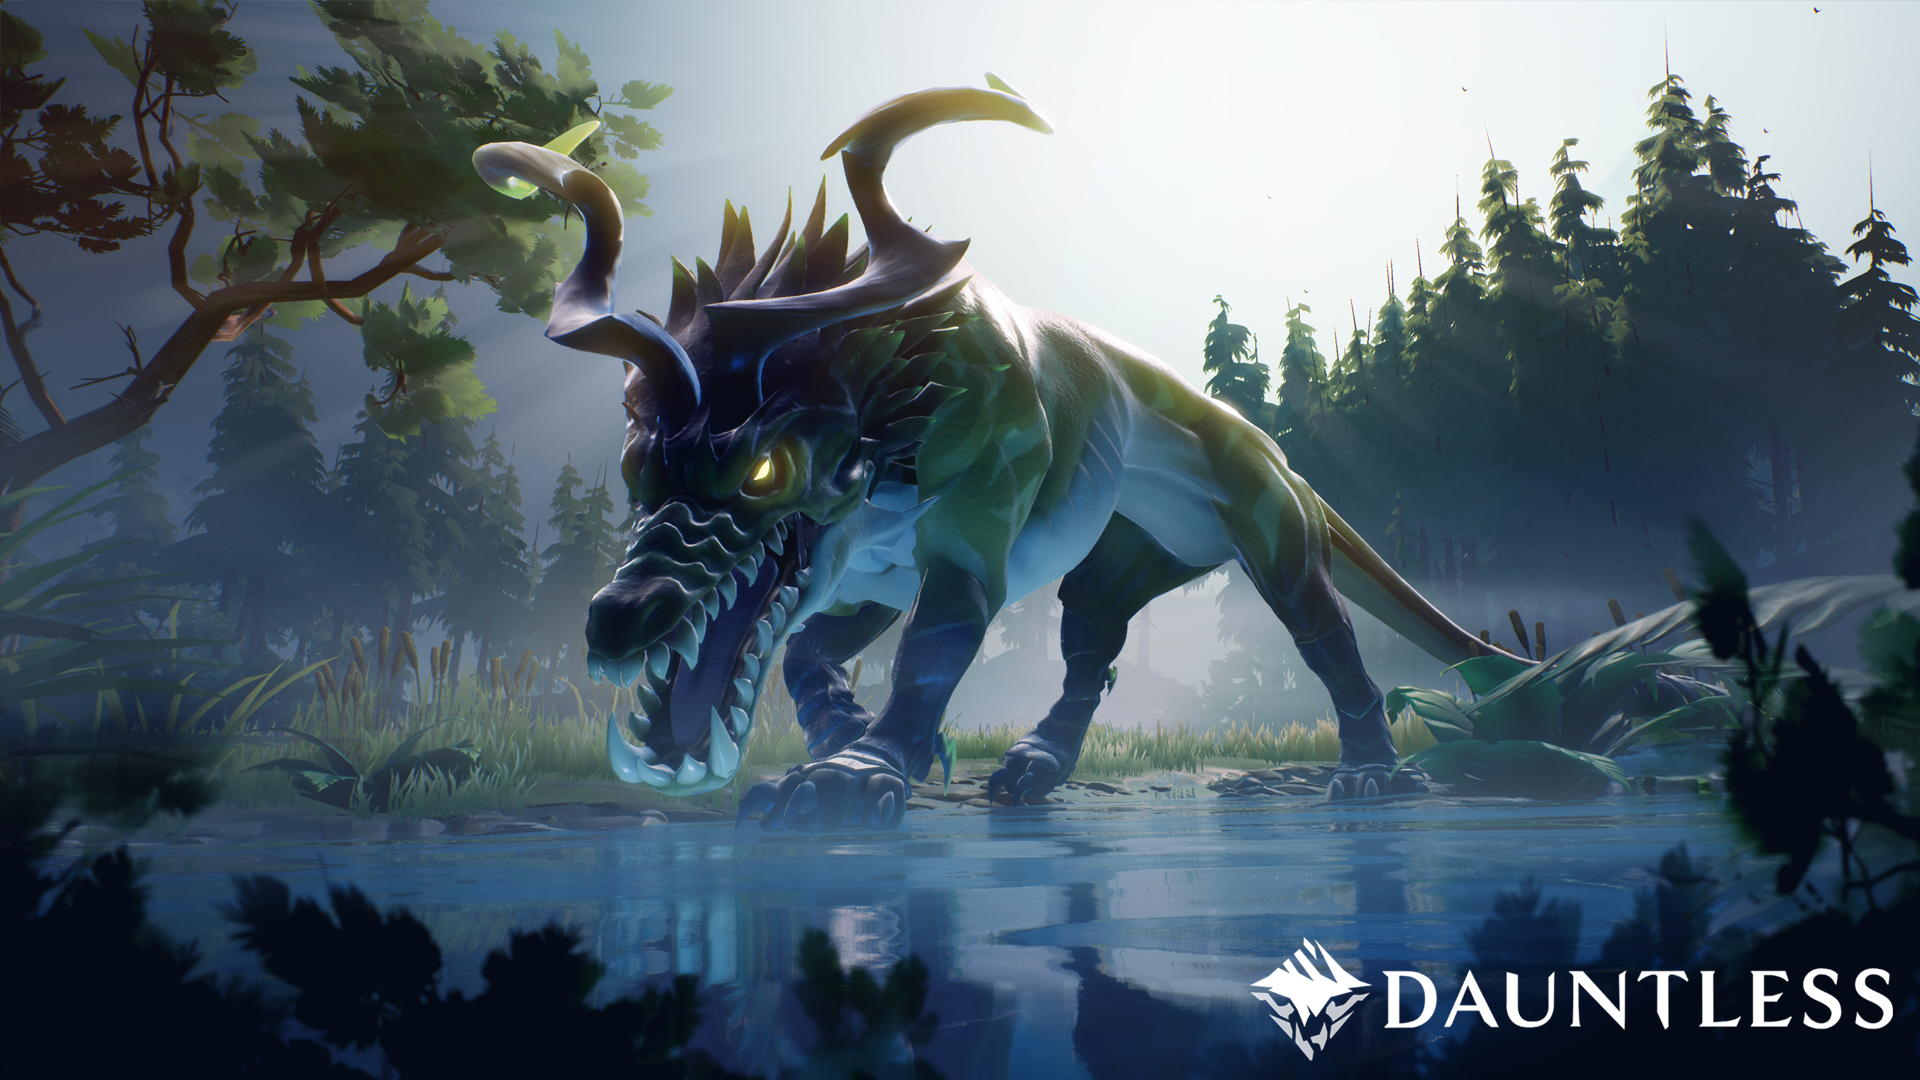 open-beta-stormclaw_screenshot-dauntless.jpg